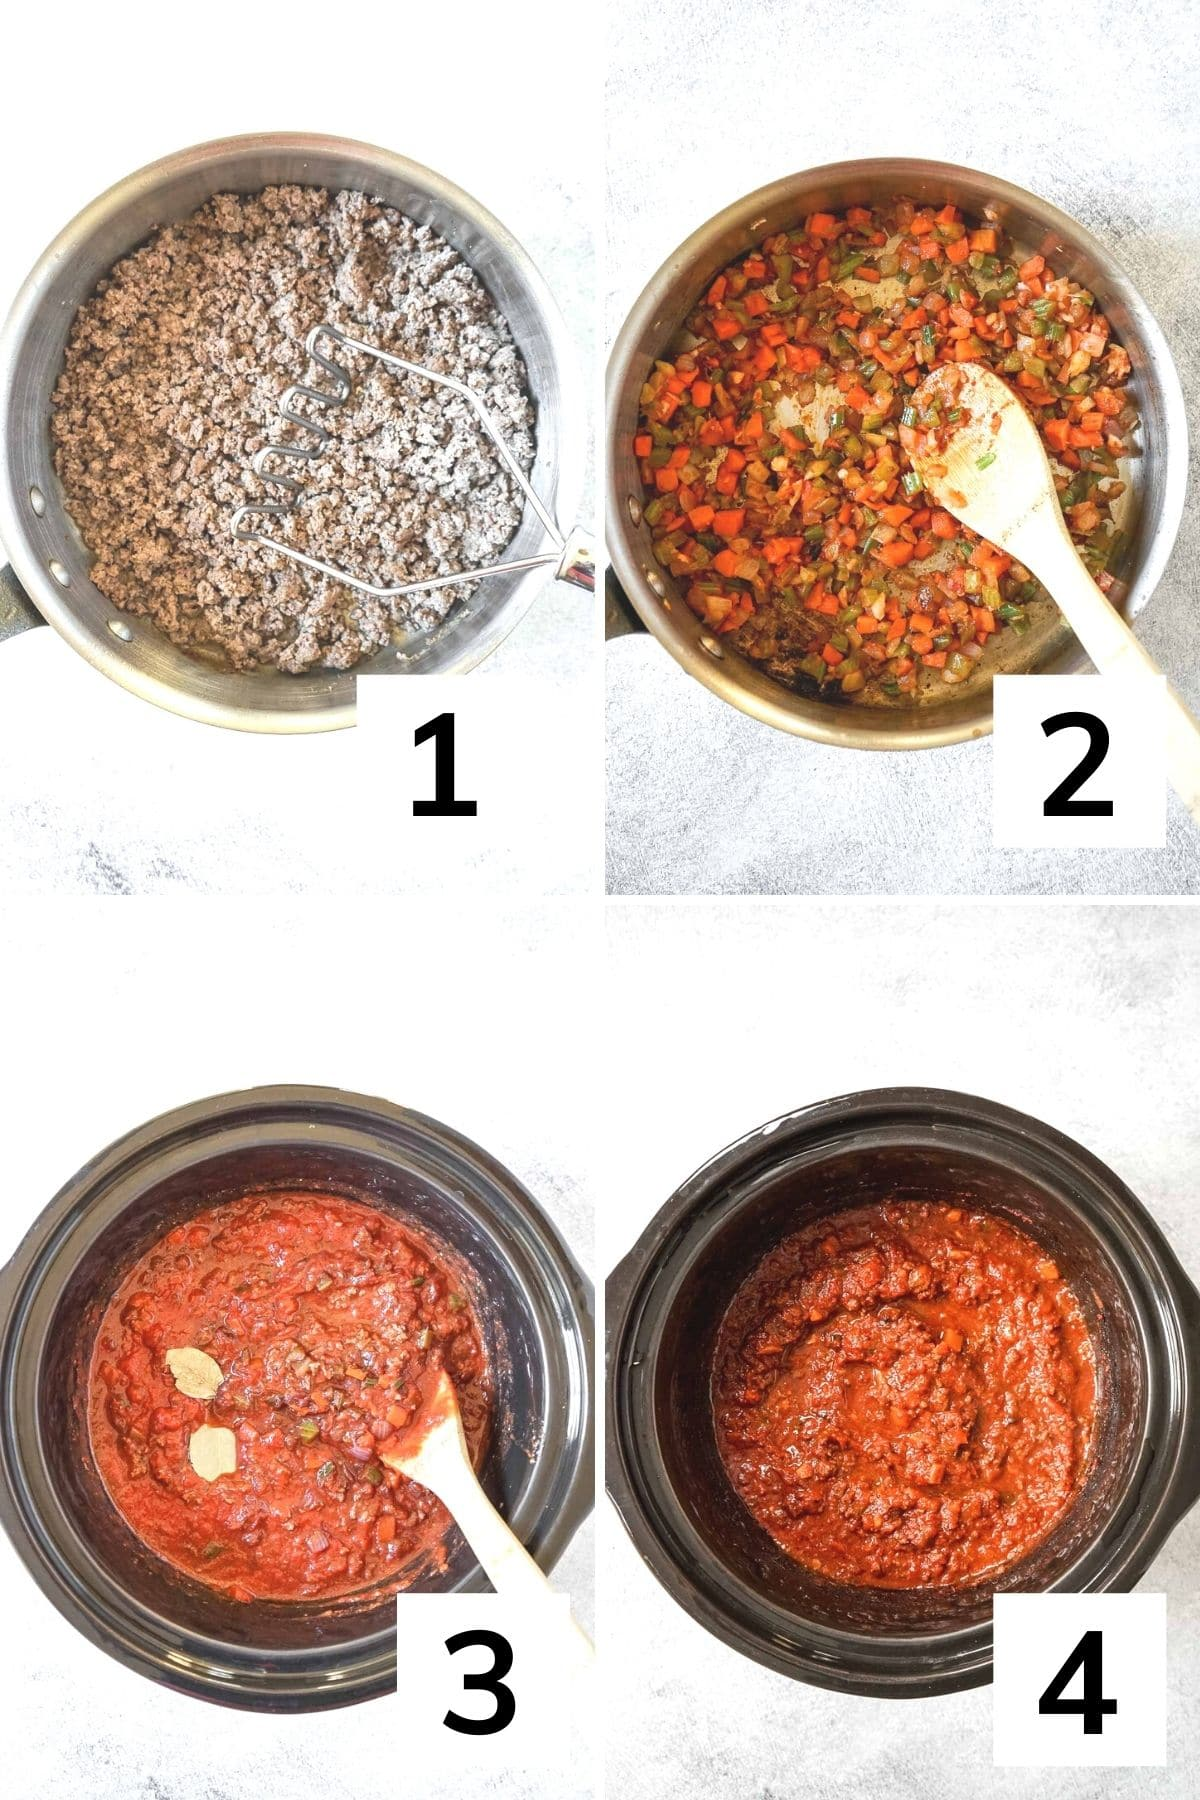 How to make bison pasta sauce step by step.